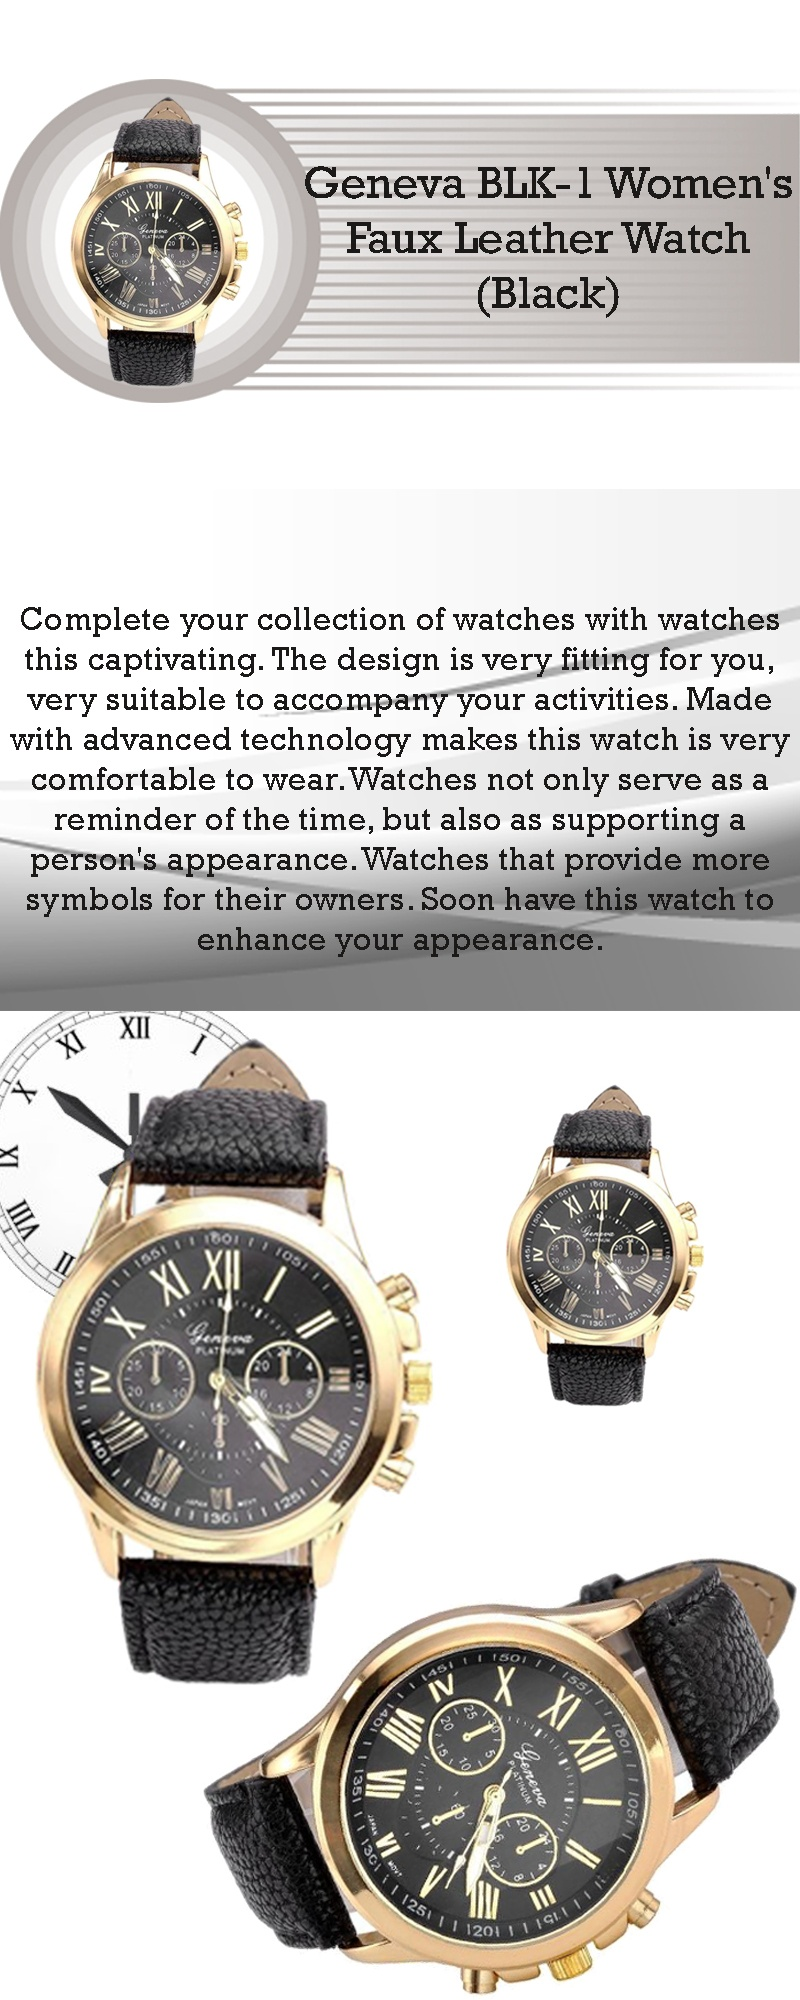 faux watches leather strap black watch expressions products geneva milano